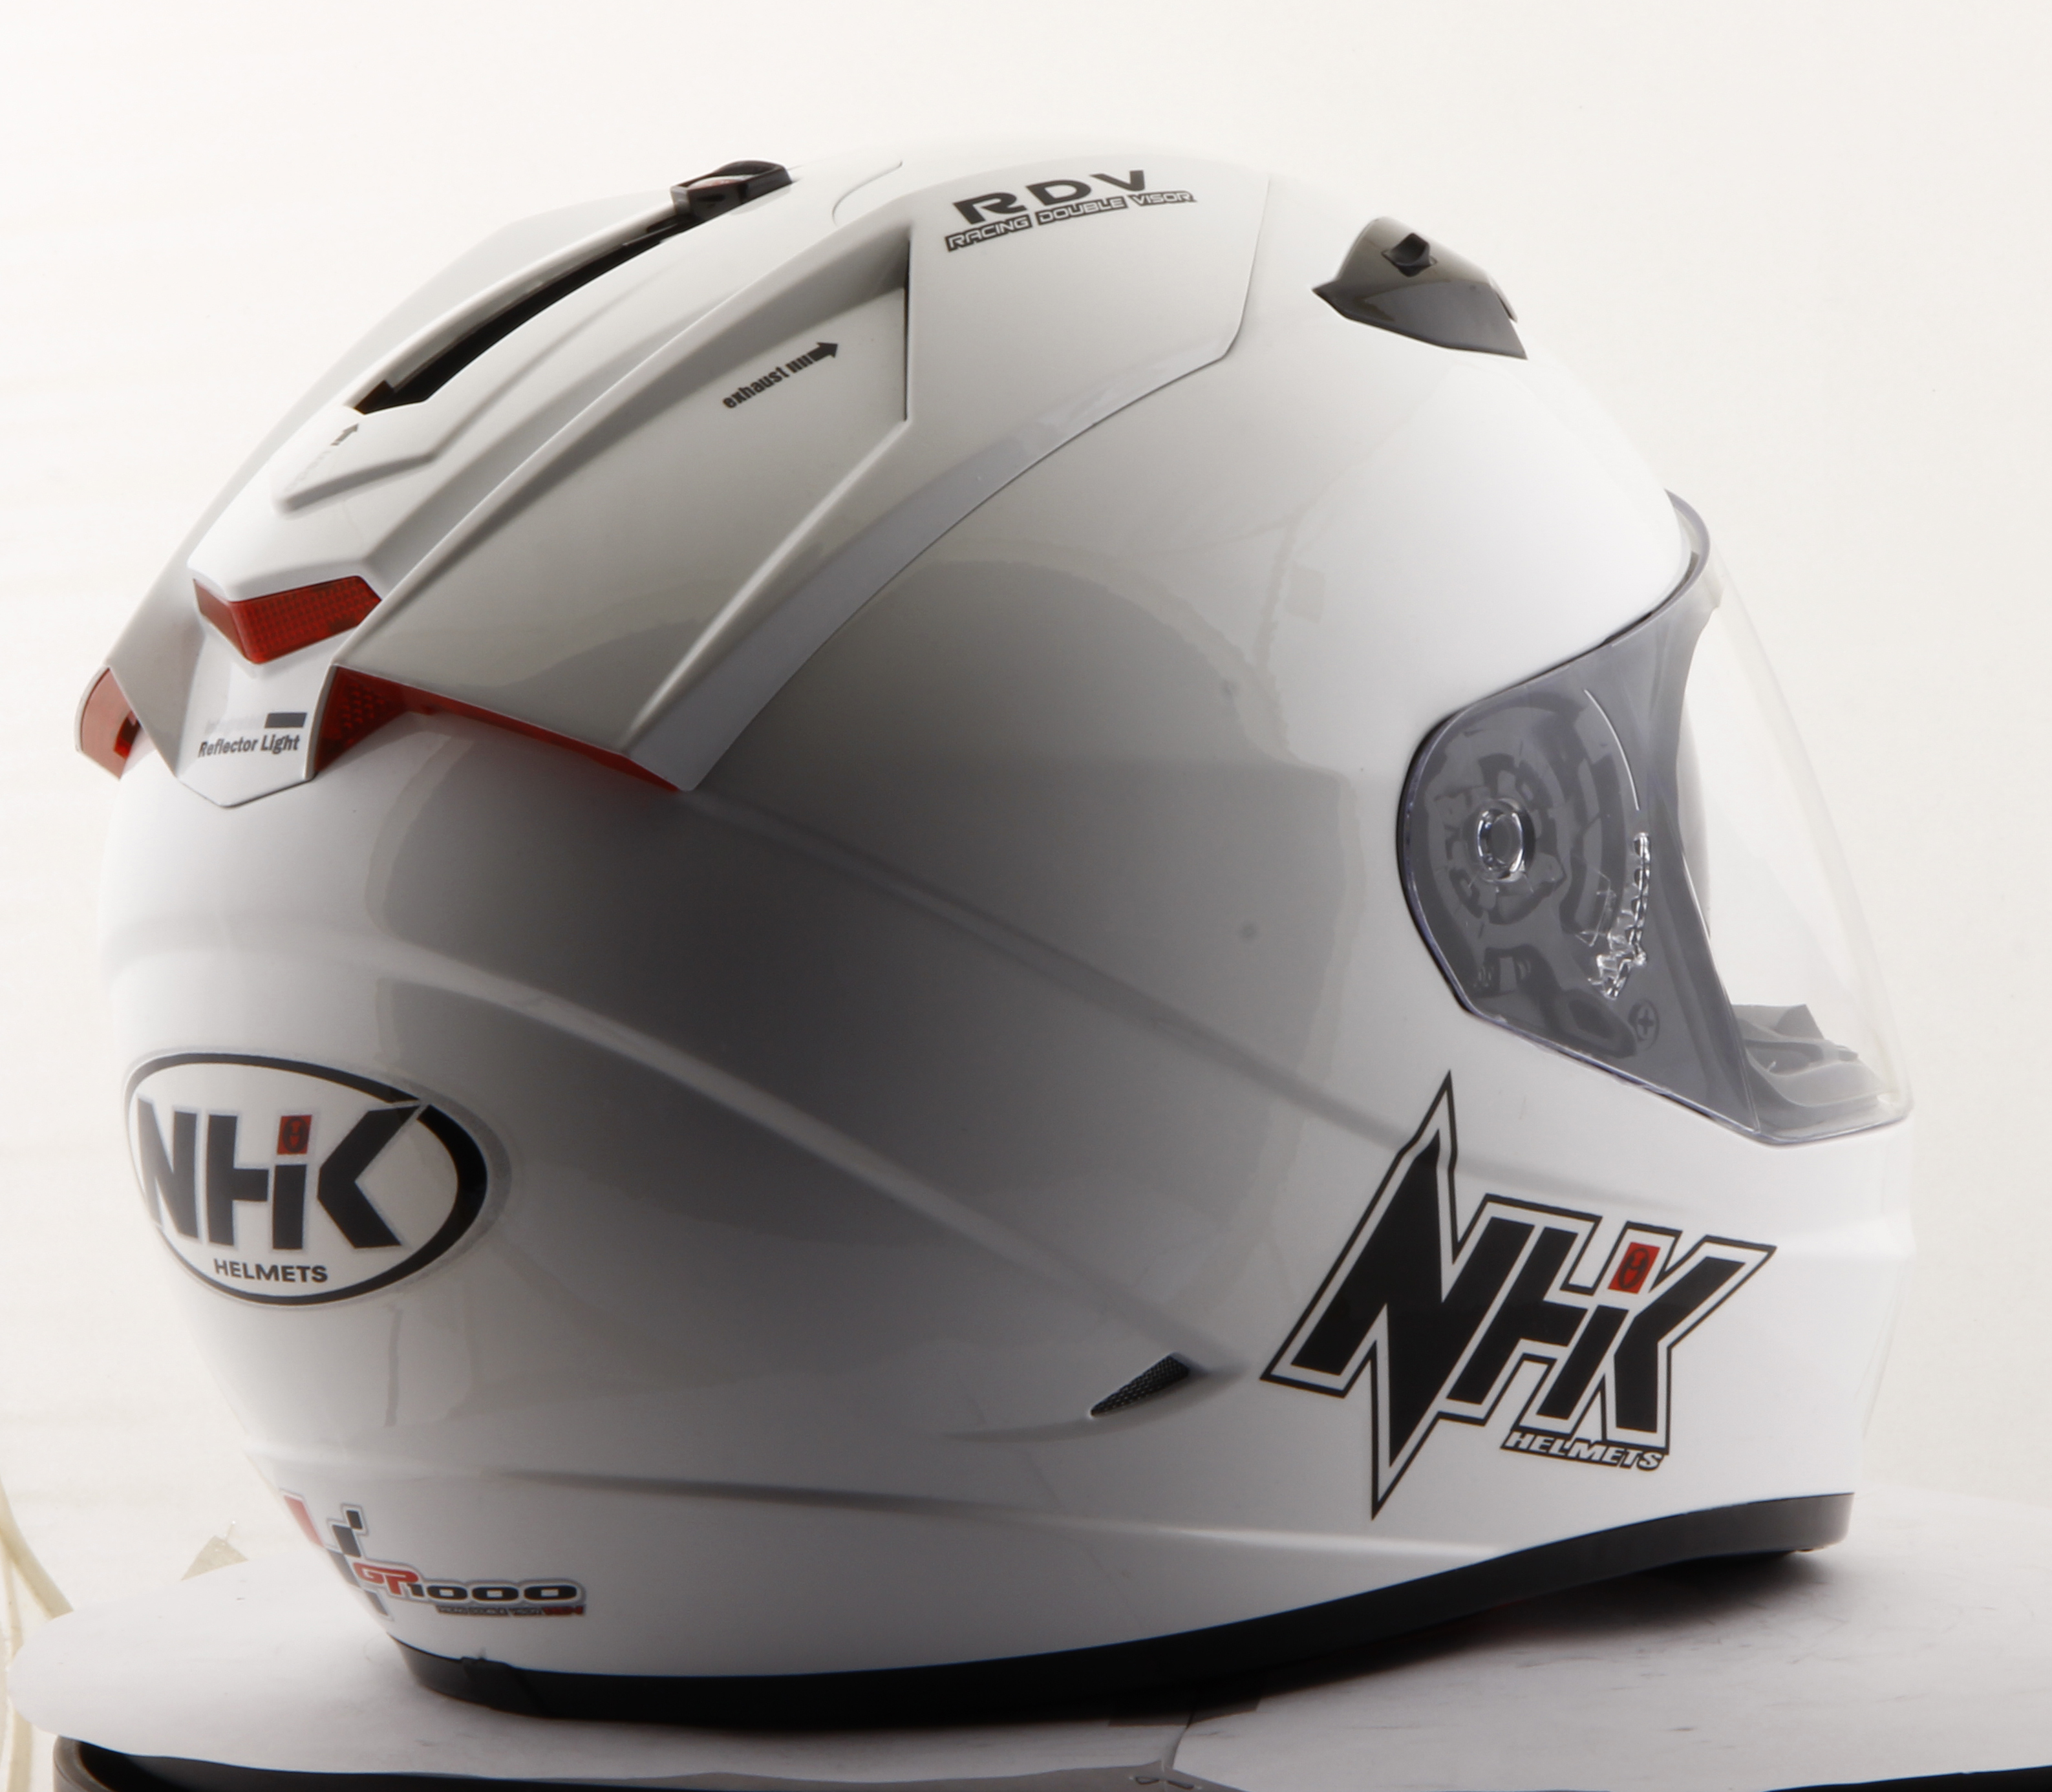 Helm Nhk Gp1000 Solid Black Full Face Xvision Yellow